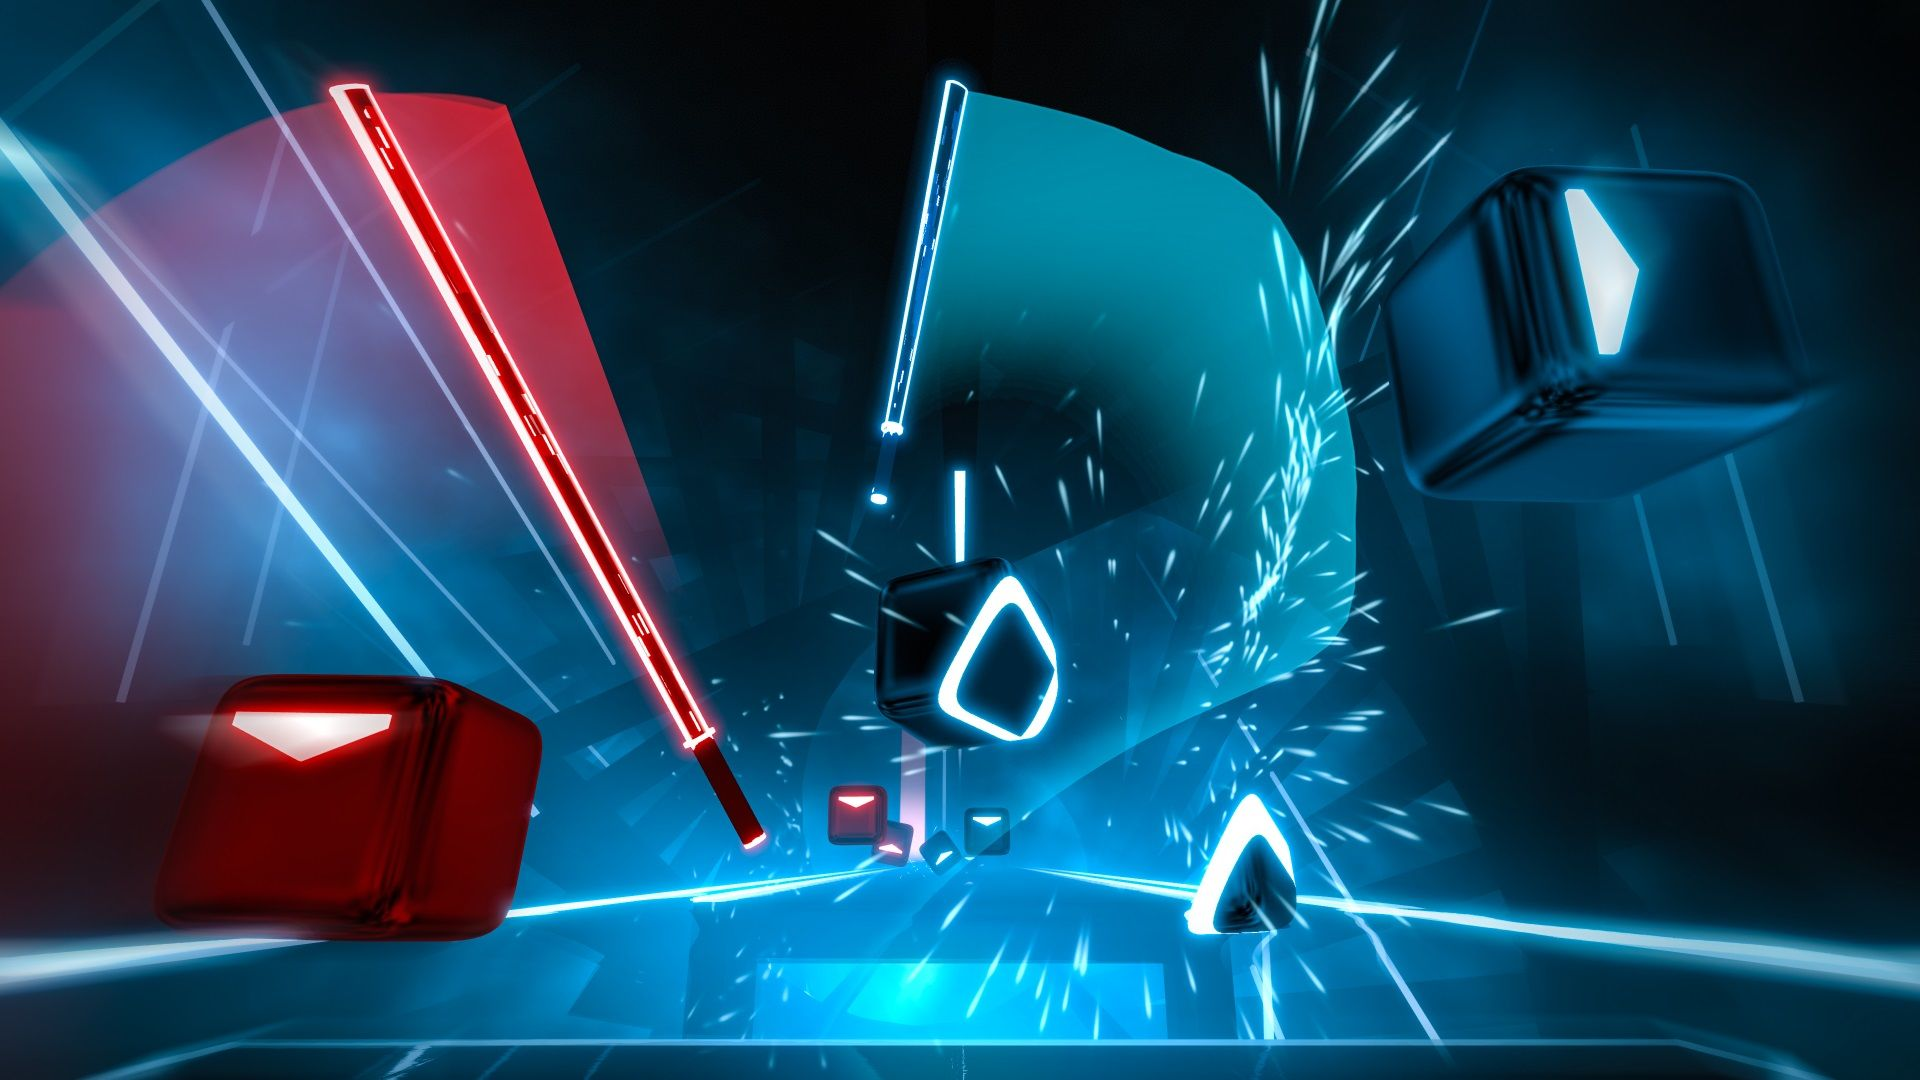 Beat Saber Has Been Updated To Version 1 13 On Psvr And This Brings In Some New Fixes Along With It Among The Fixe Vr Games Rhythm Games Virtual Reality Games